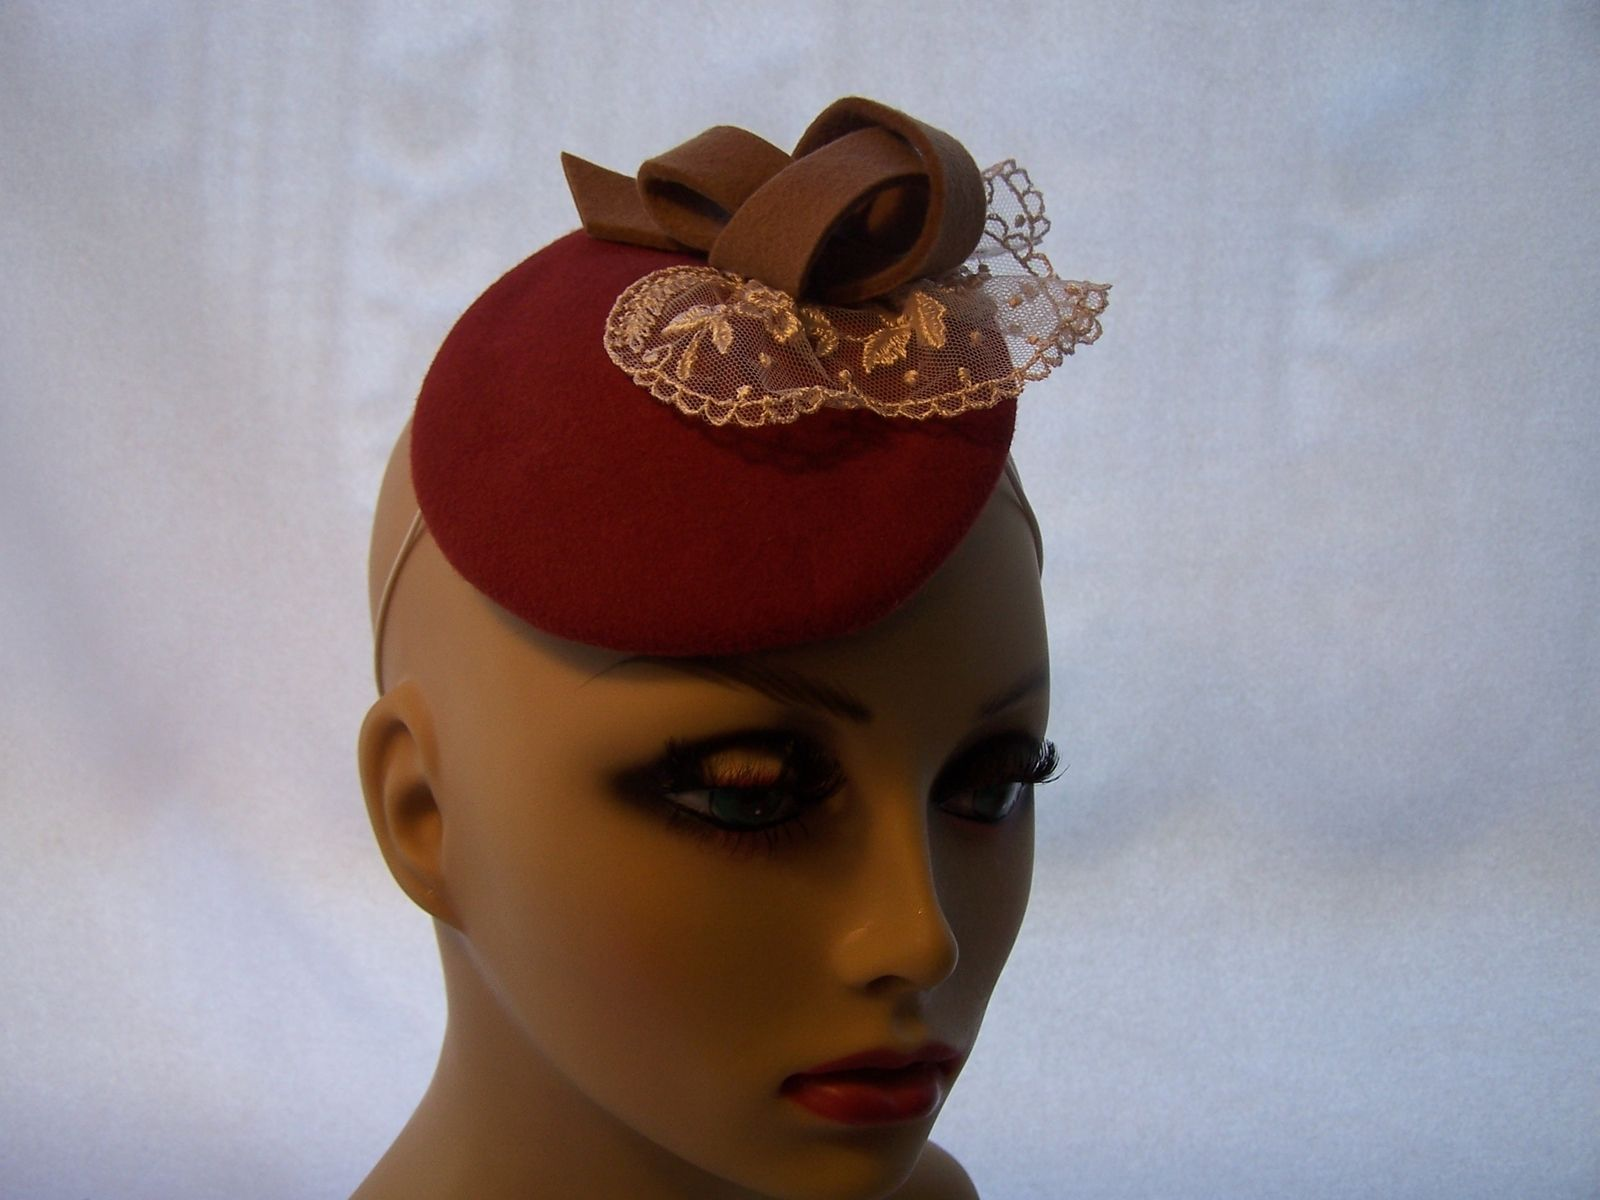 Hand Made Ruddy Red Wool Felt Fascinator Headpiece by Mixed Media by ... bfd1614500a